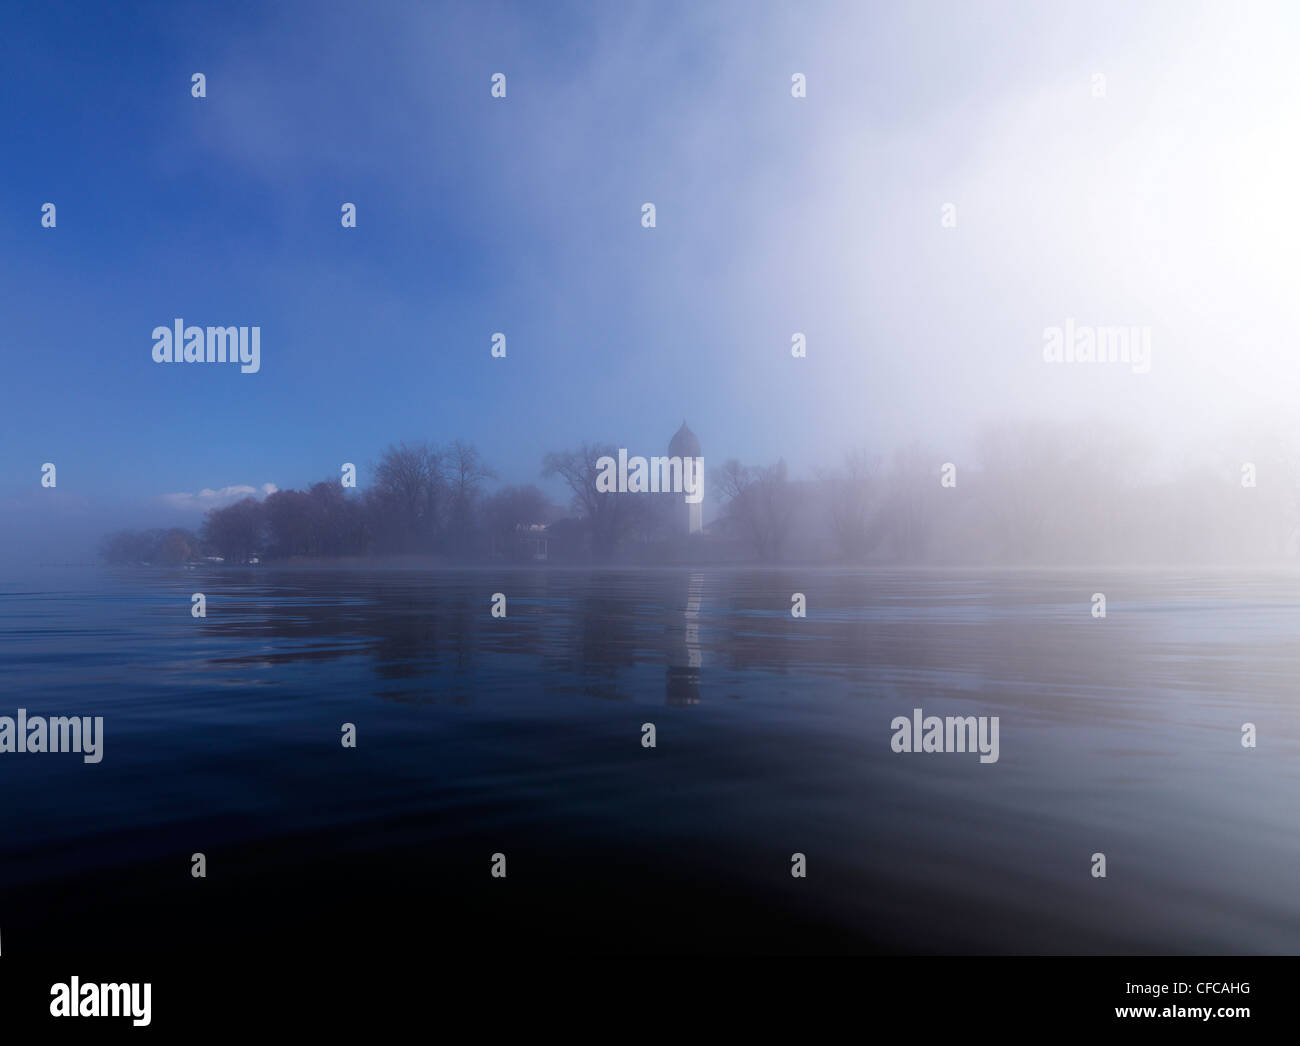 Misty scenery with tower of Frauenwoerth monastery in the background, Frauenchiemsee, Fraueninsel, Chiemgau, Bavaria, Stock Photo